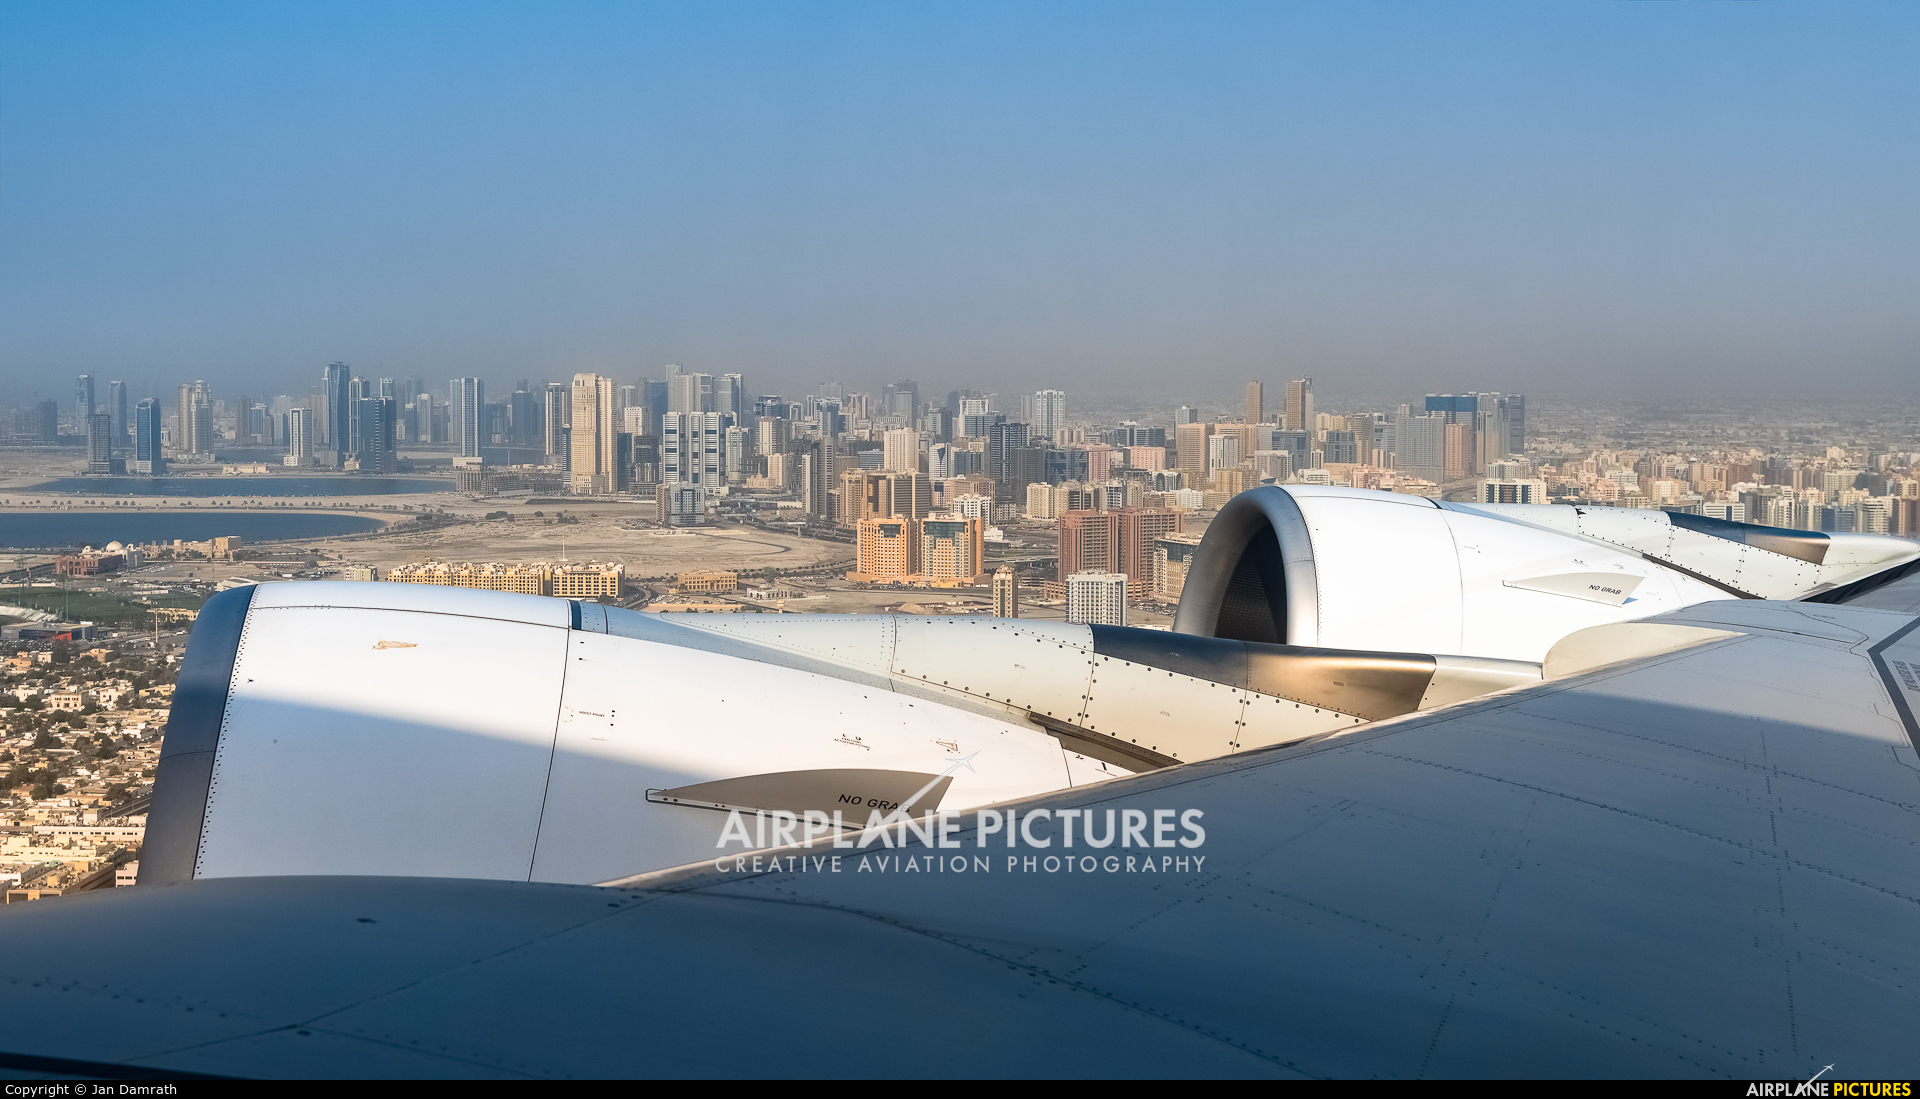 Emirates Airlines A6-EEB aircraft at In Flight - UAE